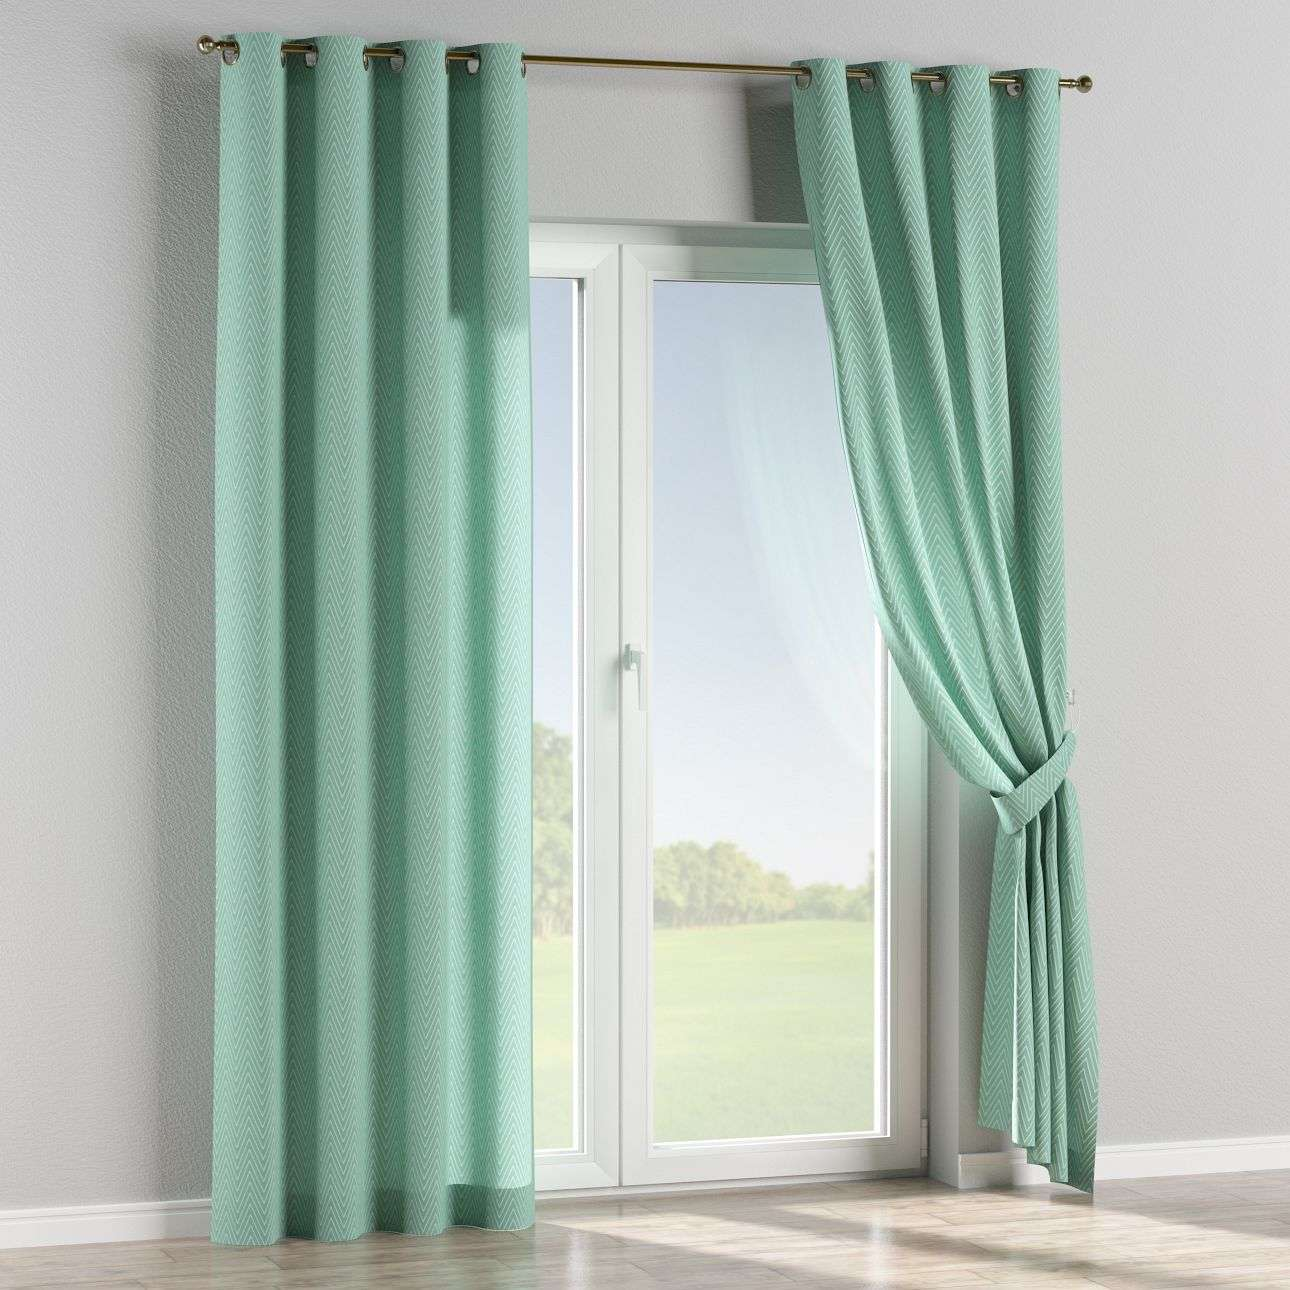 Eyelet curtains 130 x 260 cm (51 x 102 inch) in collection Brooklyn, fabric: 137-90